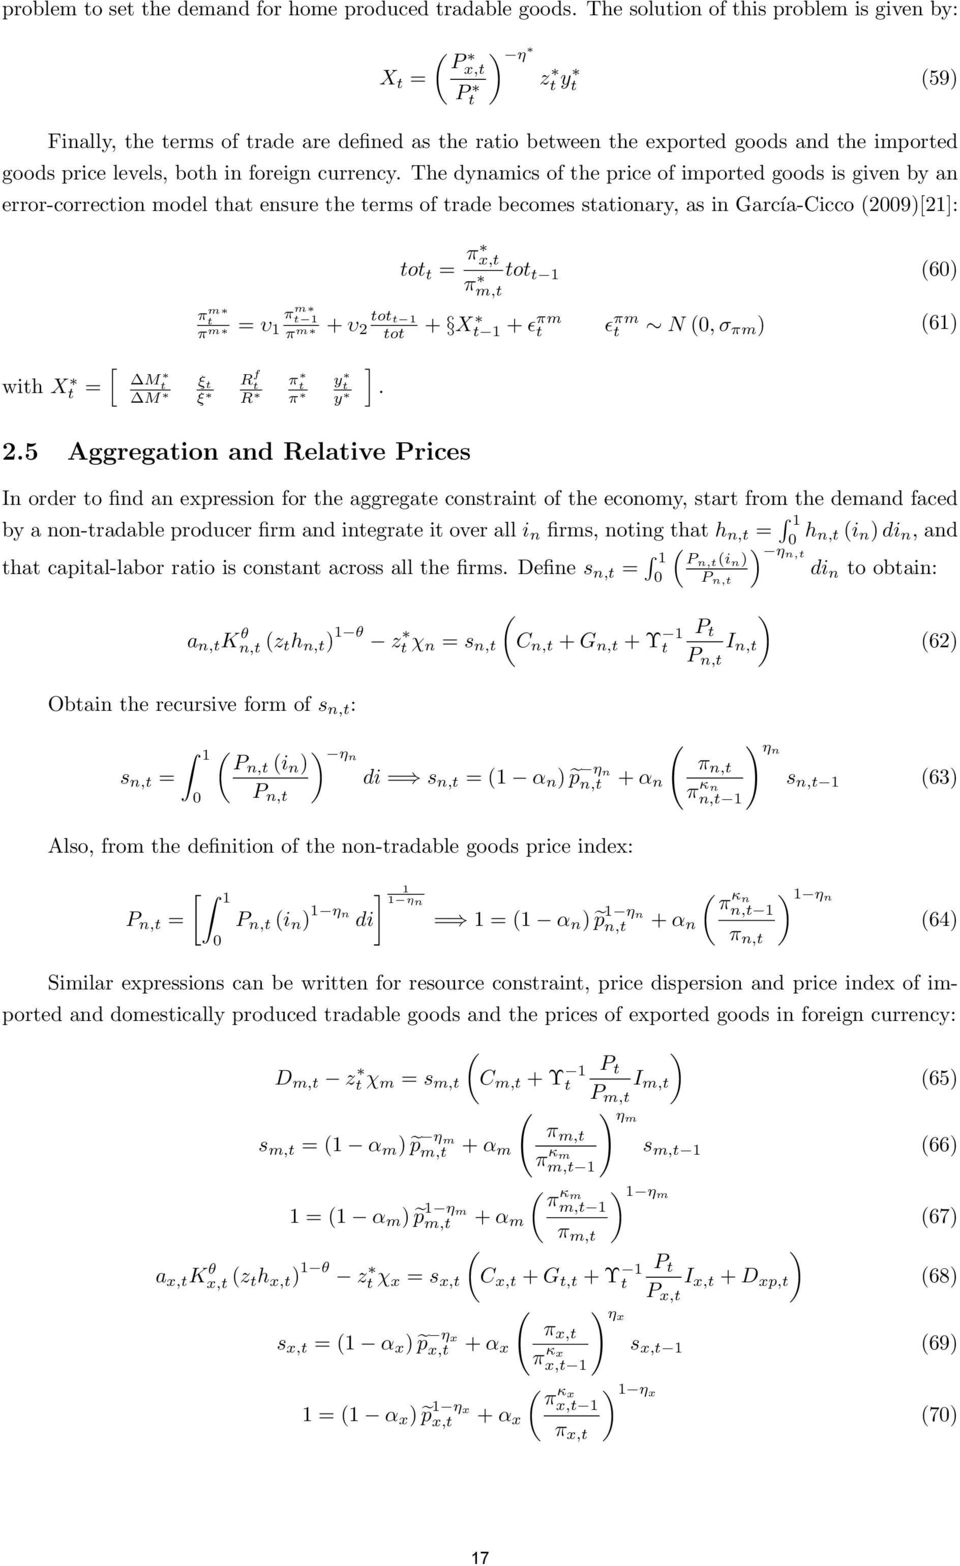 The ynamics of he price of impore goos is given by an error-correcion moel ha ensure he erms of rae becomes saionary, as in García-Cicco 2009[21]: [ wih X = M M π m π m ξ ξ o = π x, πm, o 1 60 = υ π